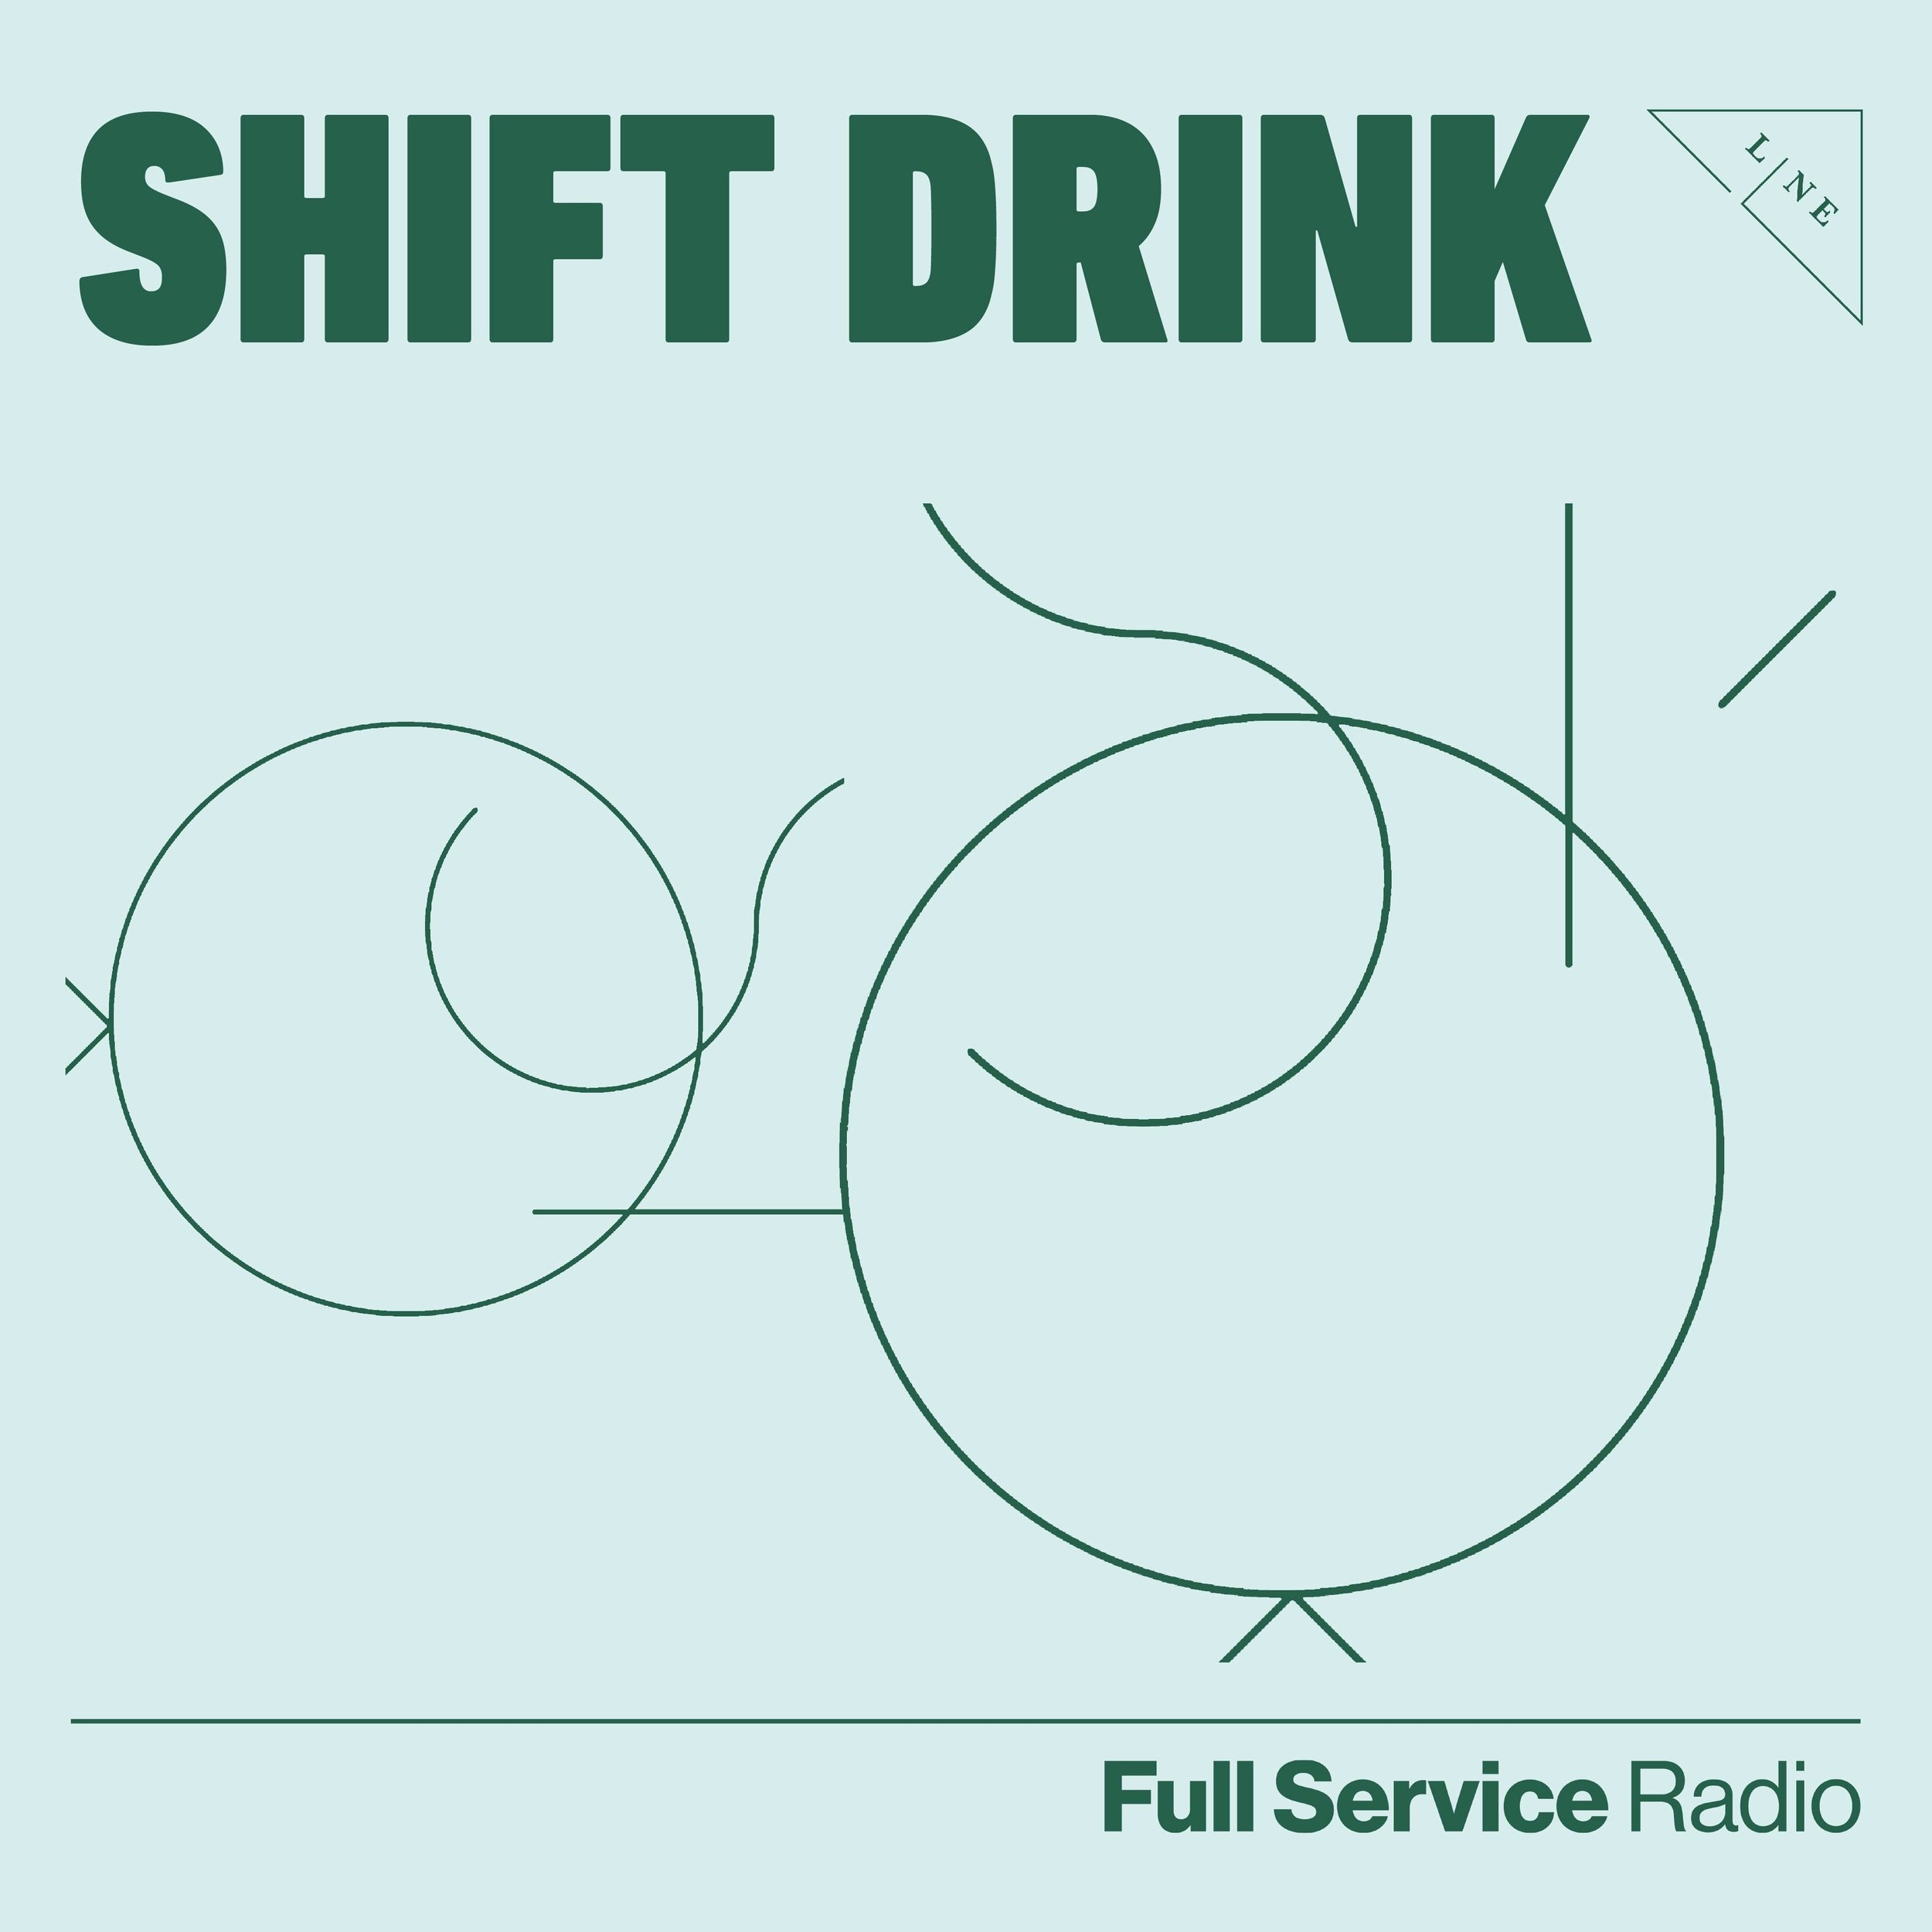 SHIFT_20DRINK-01.jpg